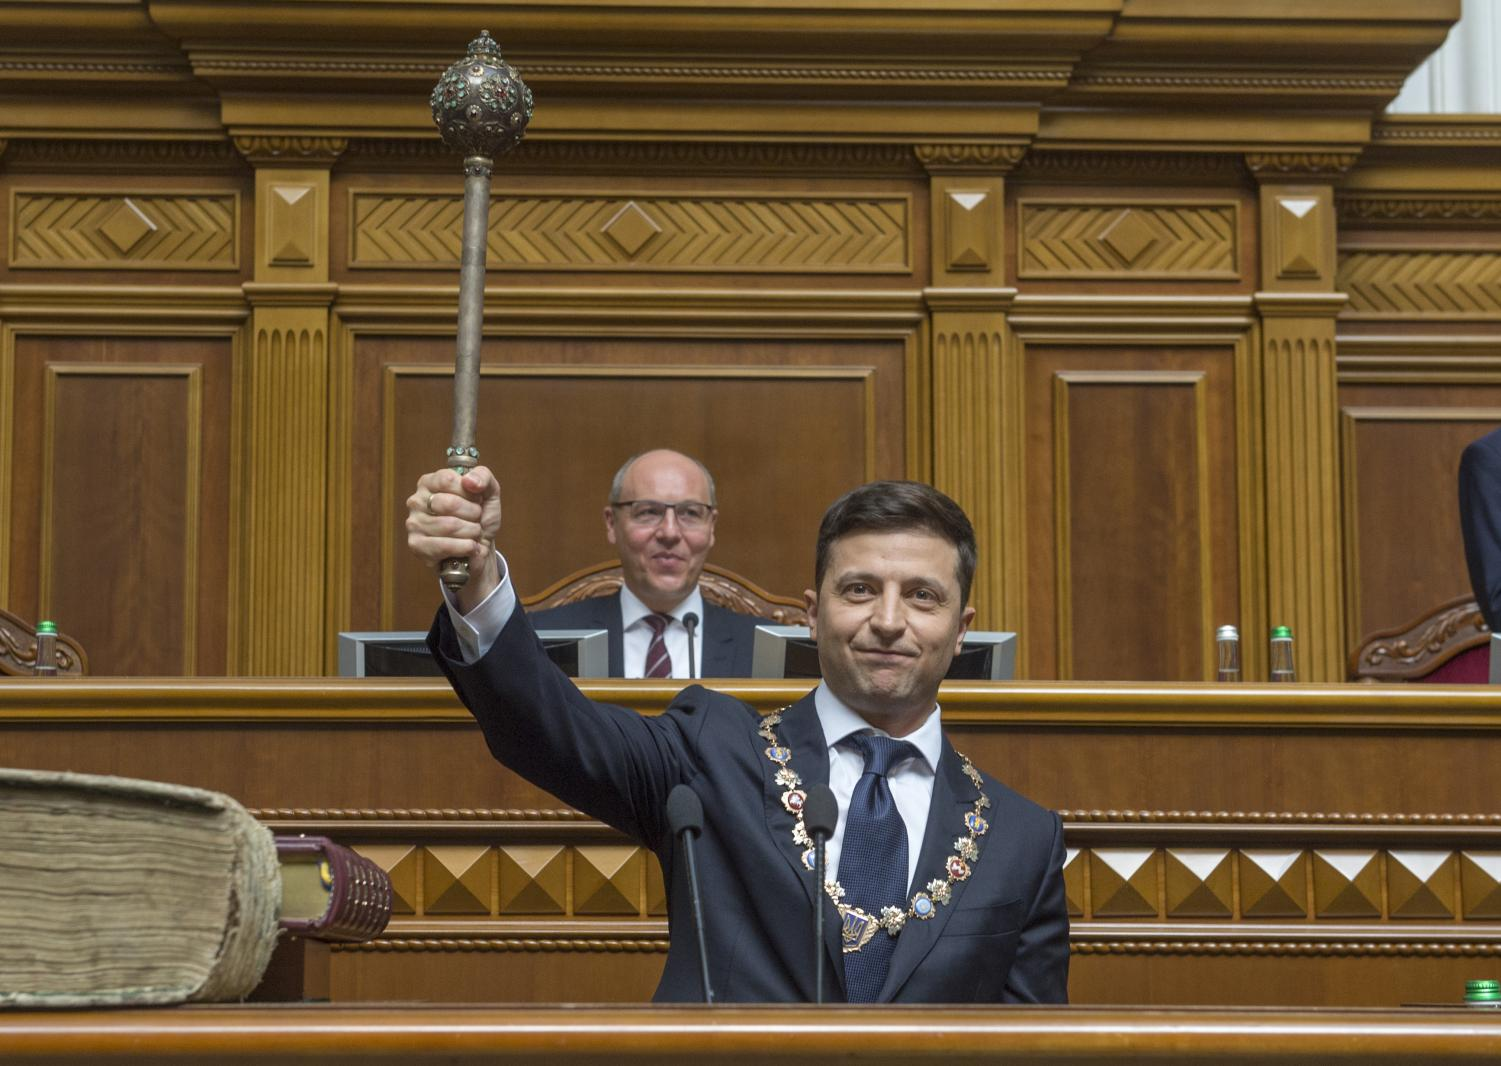 The new Ukrainian President Volodymyr Zelensky holds up a mace, the Ukrainian symbol of power, during his inauguration May 20, 2019.